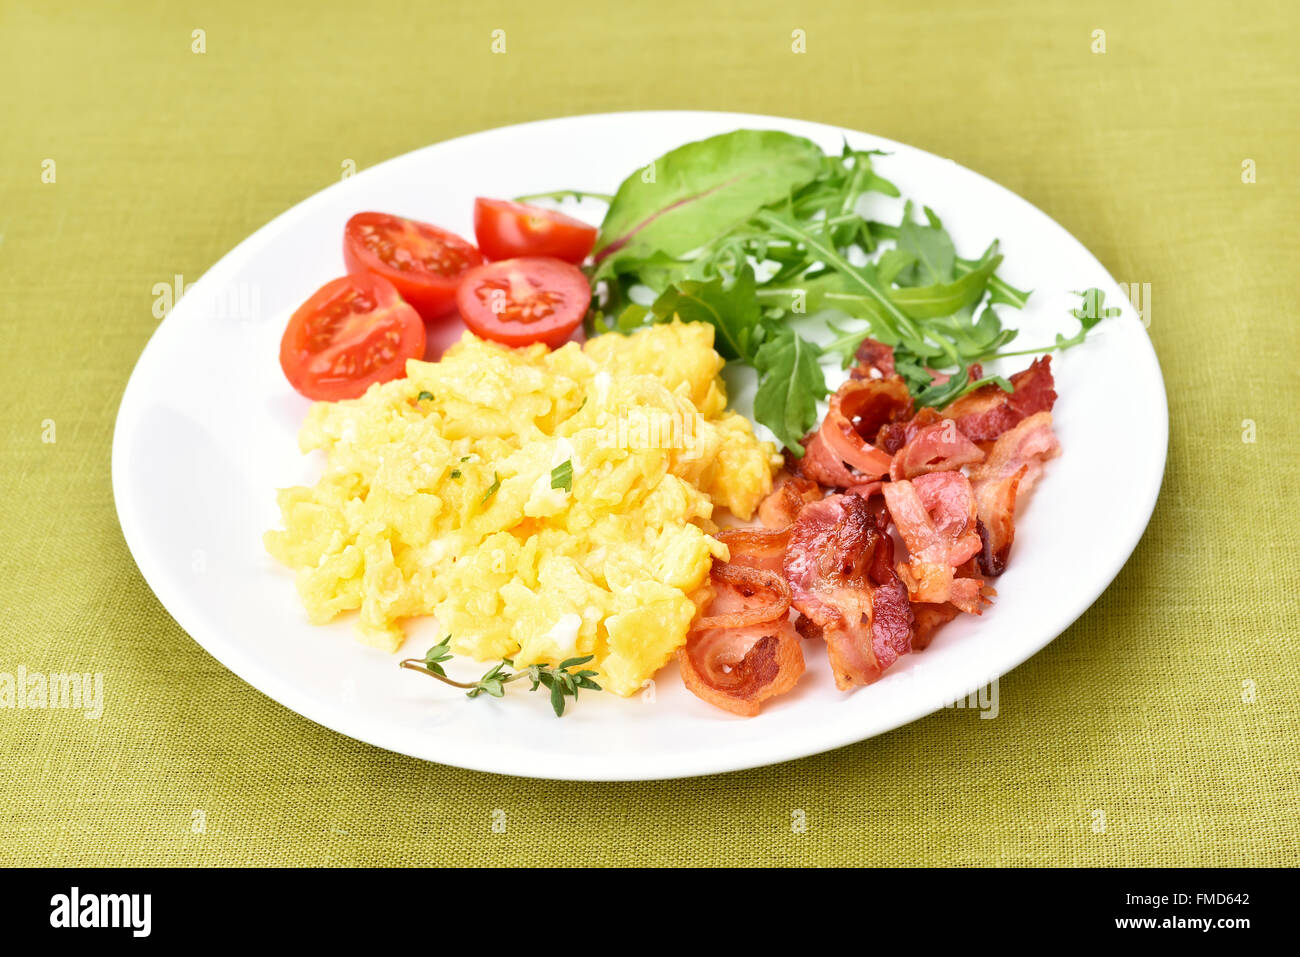 Breakfast scrambled eggs, bacon and vegetable on white plate - Stock Image